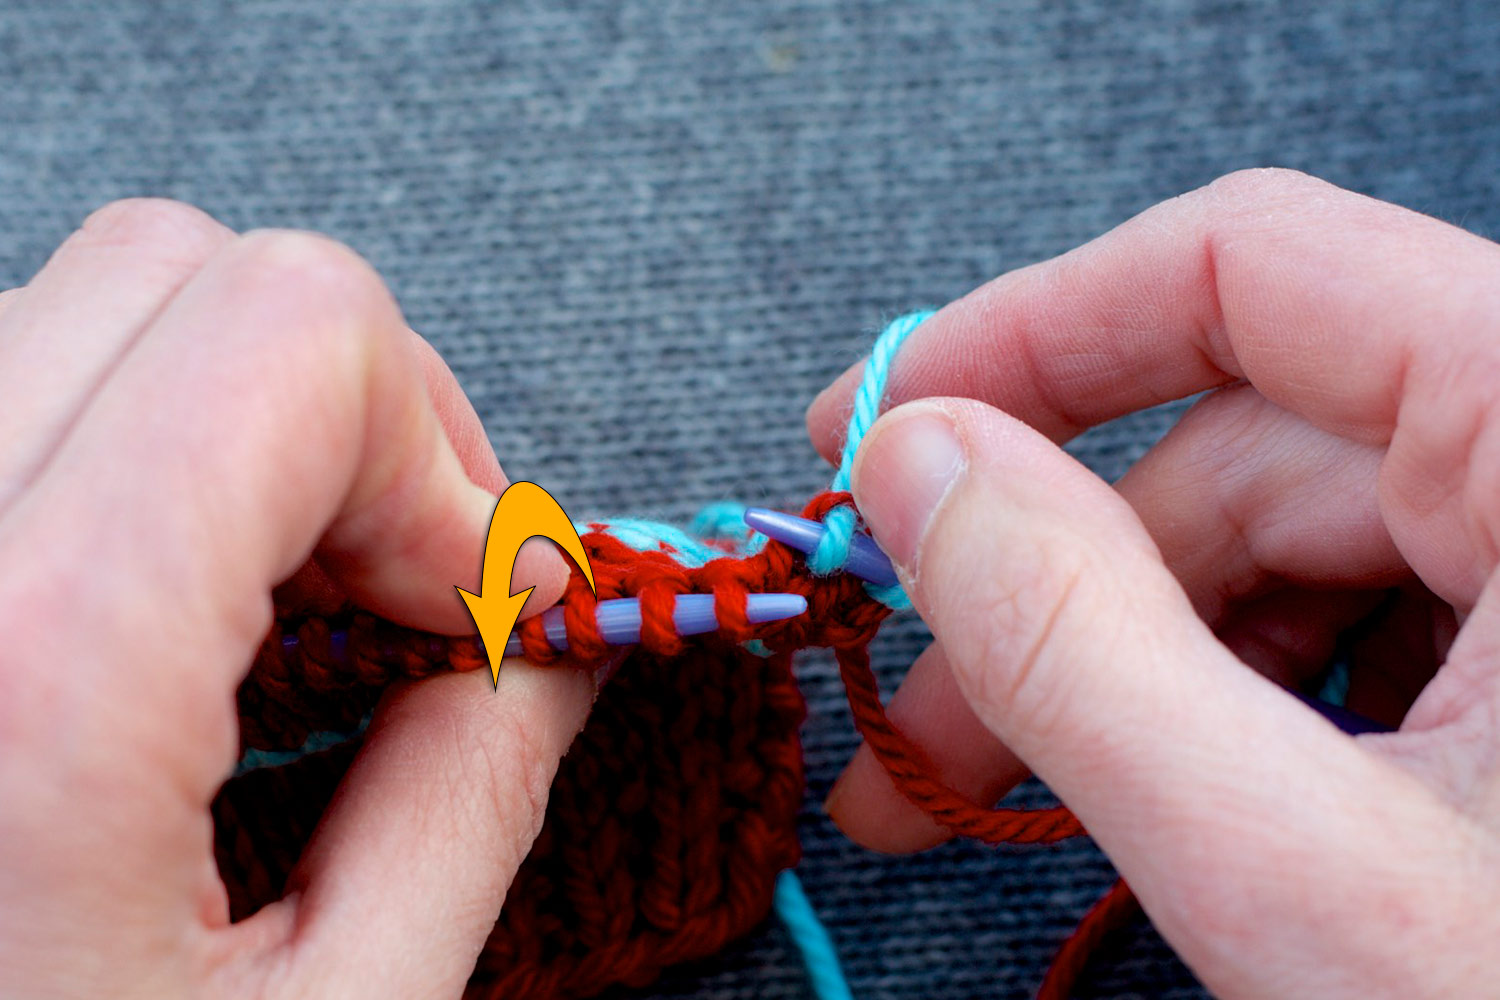 Stitches on the knitting needles with left needle tilted forwards (as indicated by large yellow arrow) to show purls bumps on wrong side.